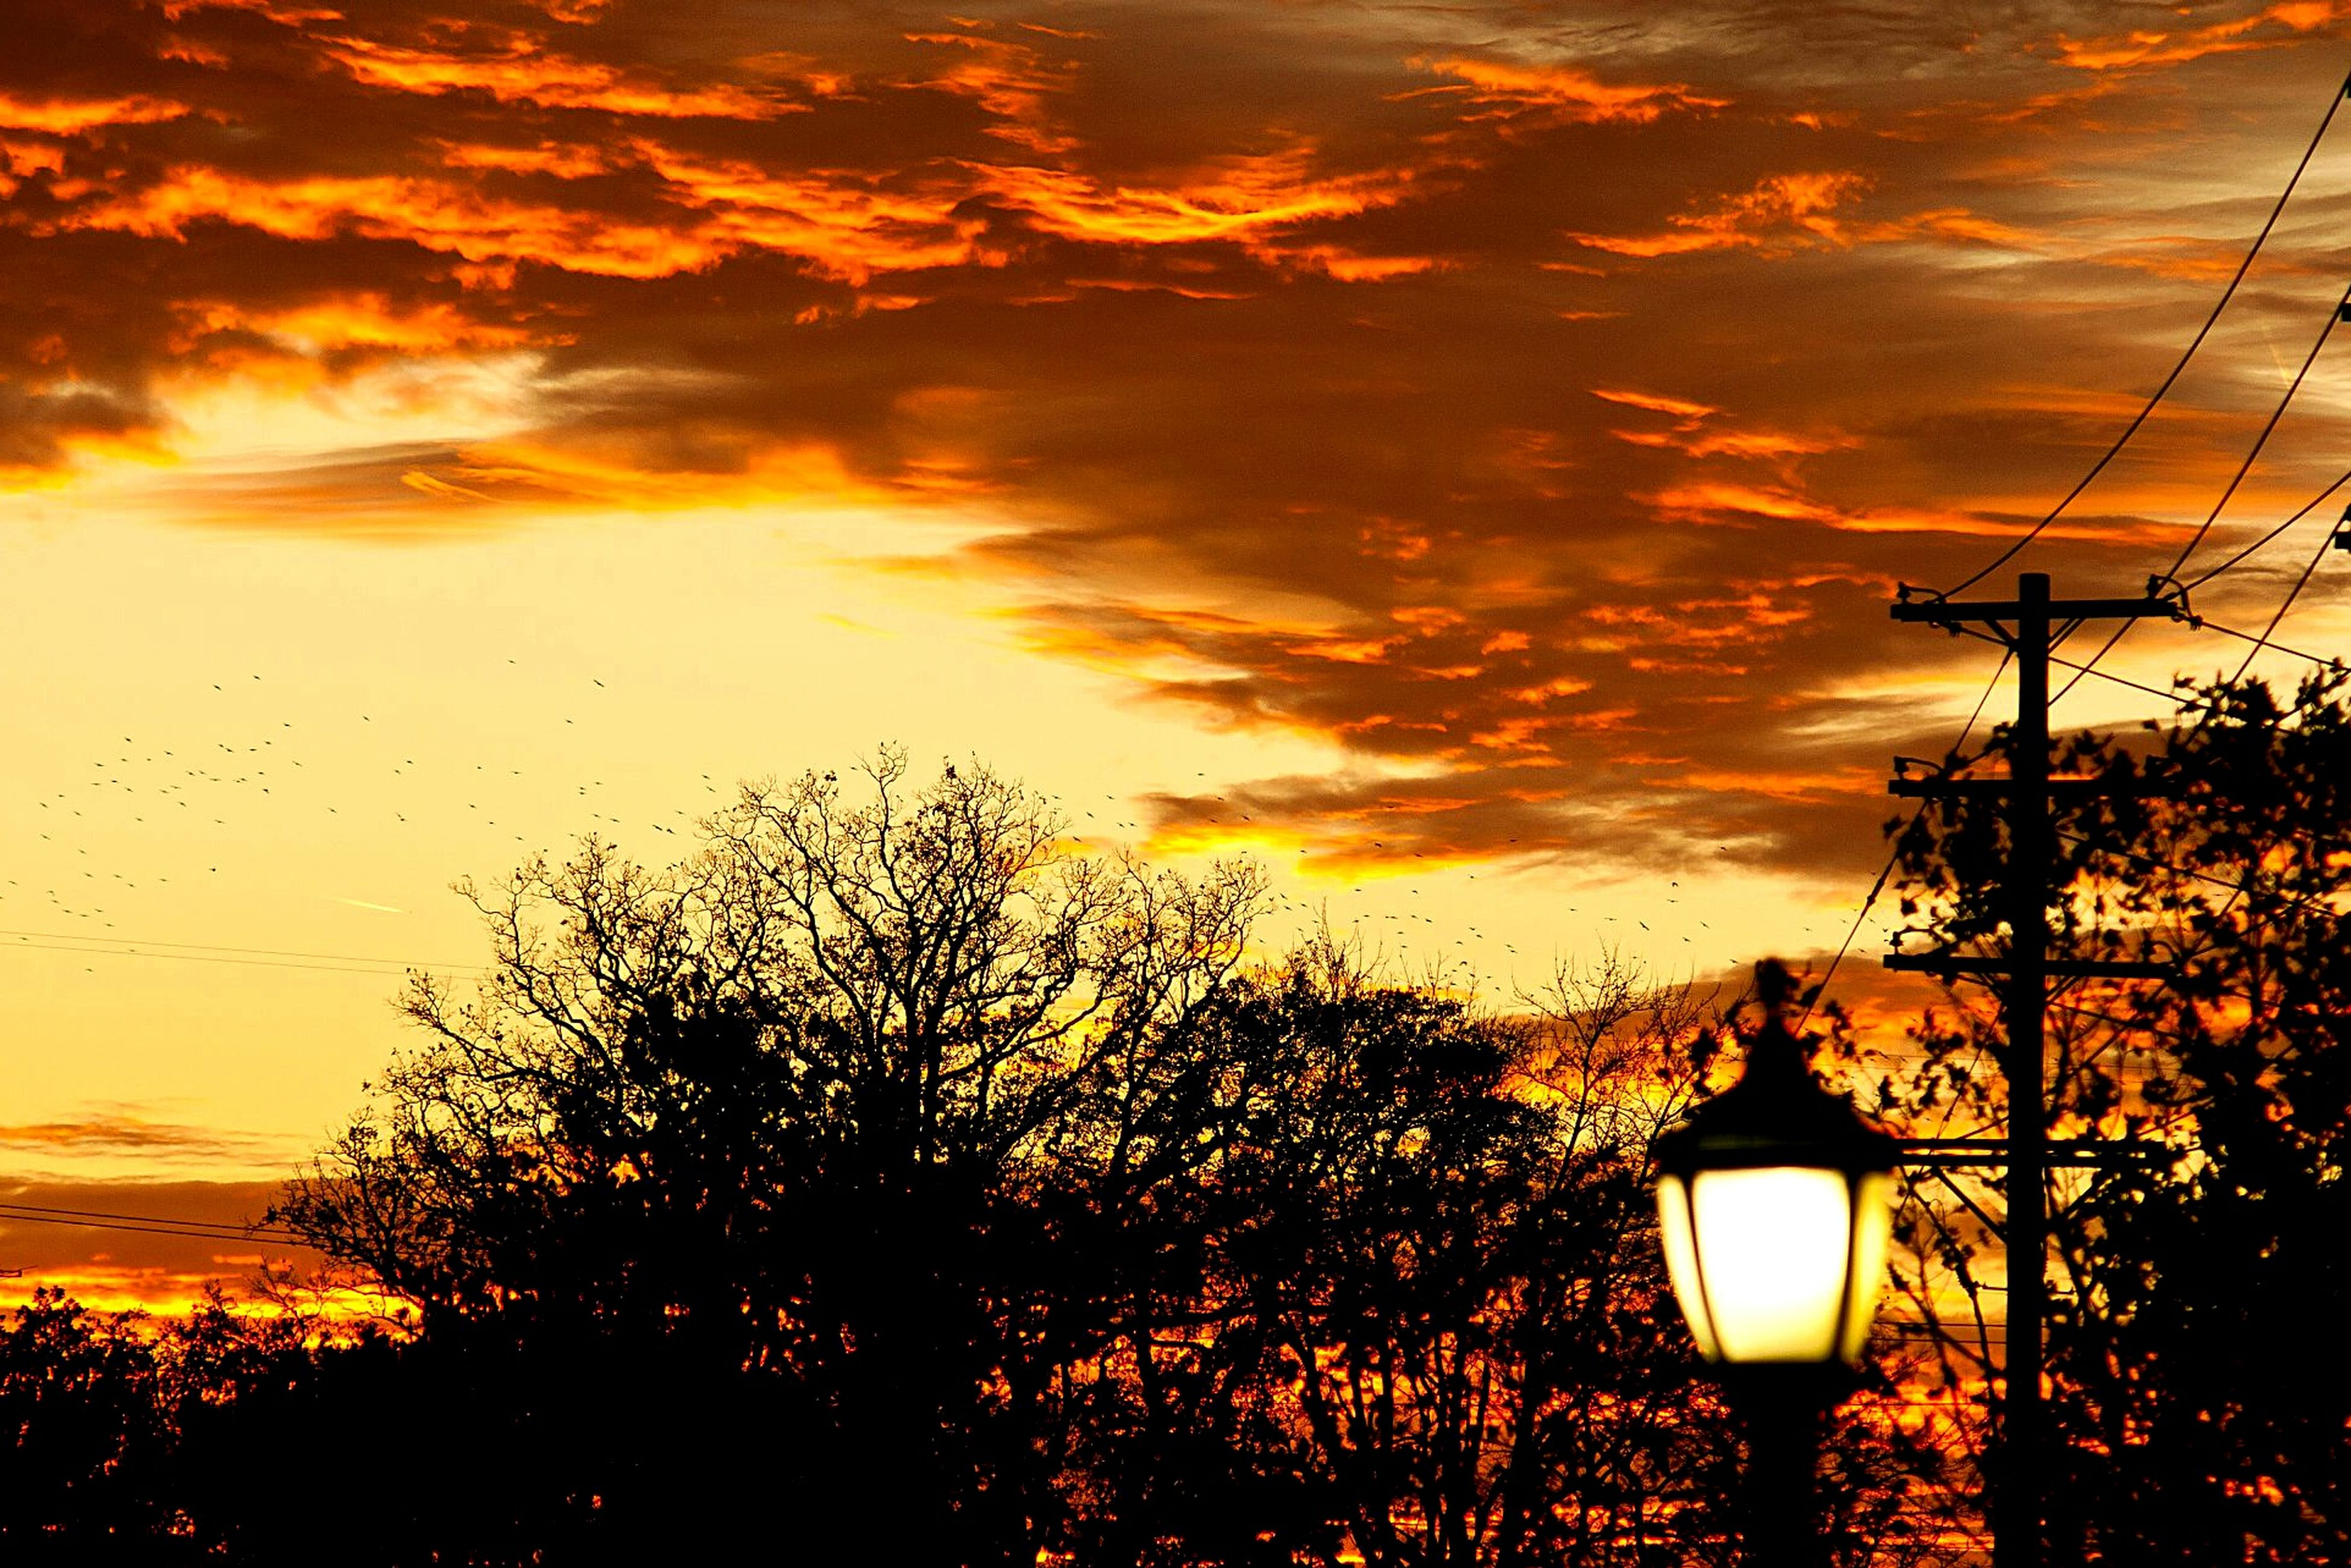 sunset, sky, silhouette, lighting equipment, street light, orange color, low angle view, tree, electricity, beauty in nature, tranquility, scenics, illuminated, cloud - sky, sun, nature, tranquil scene, dusk, electric light, idyllic